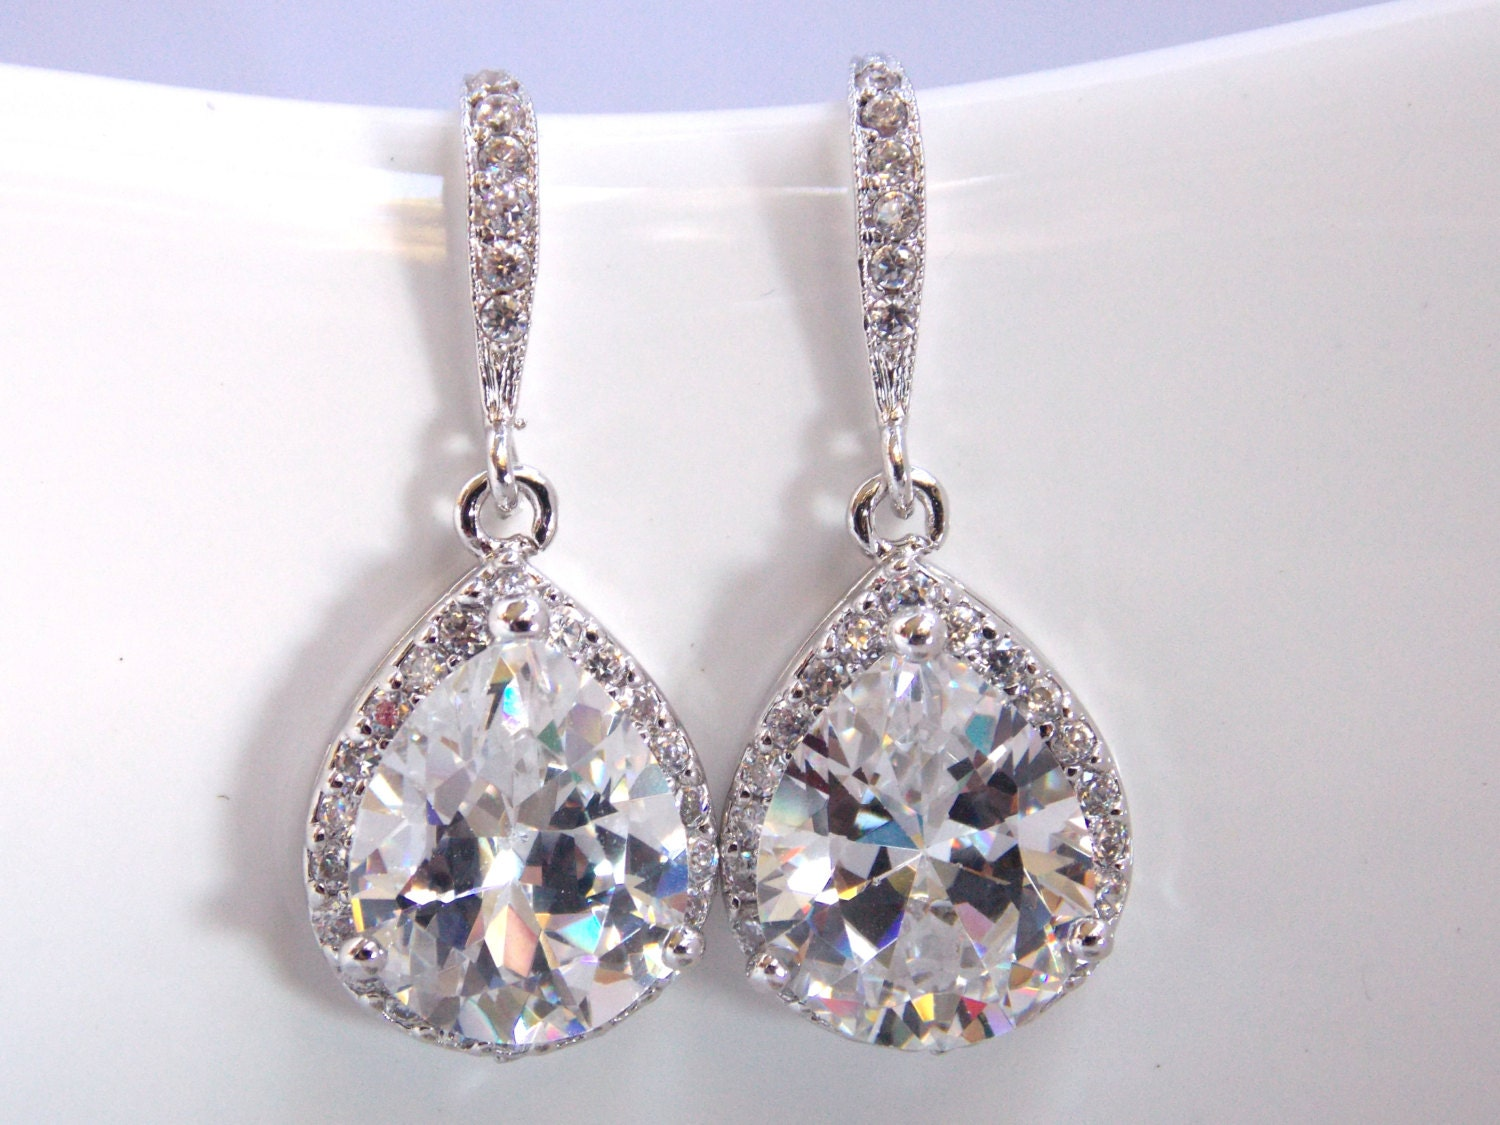 bride zoom earrings long il crystal bridal listing wedding qftx fullxfull